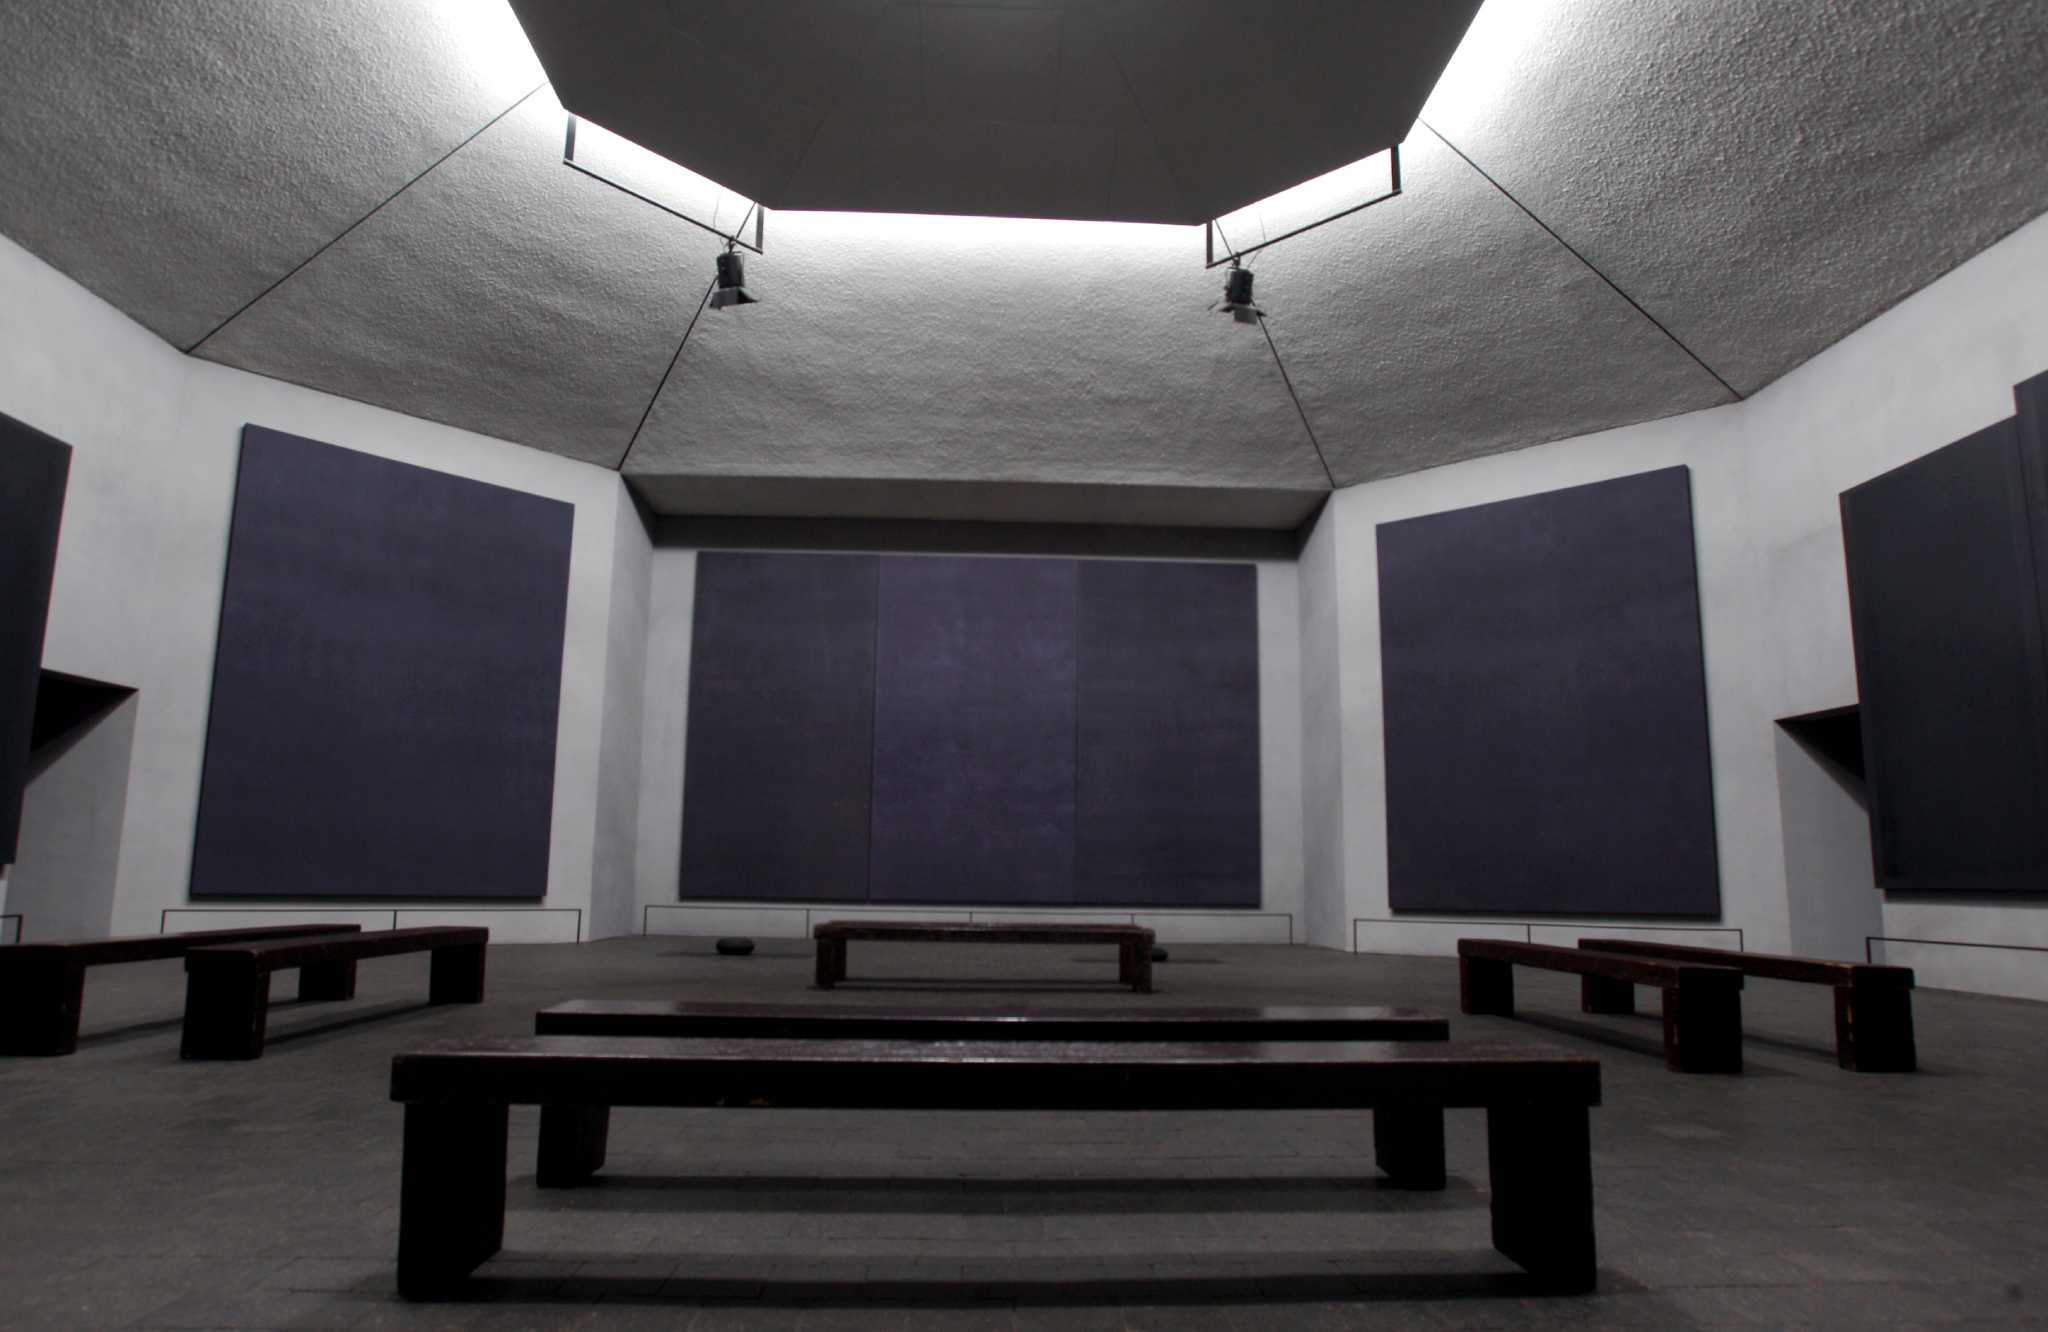 rothko chapel thesis This is a case for mark rothko rectangles after rectangles after rectangles rothko was a truly prolific artist who found his groove painting hazy swatches.